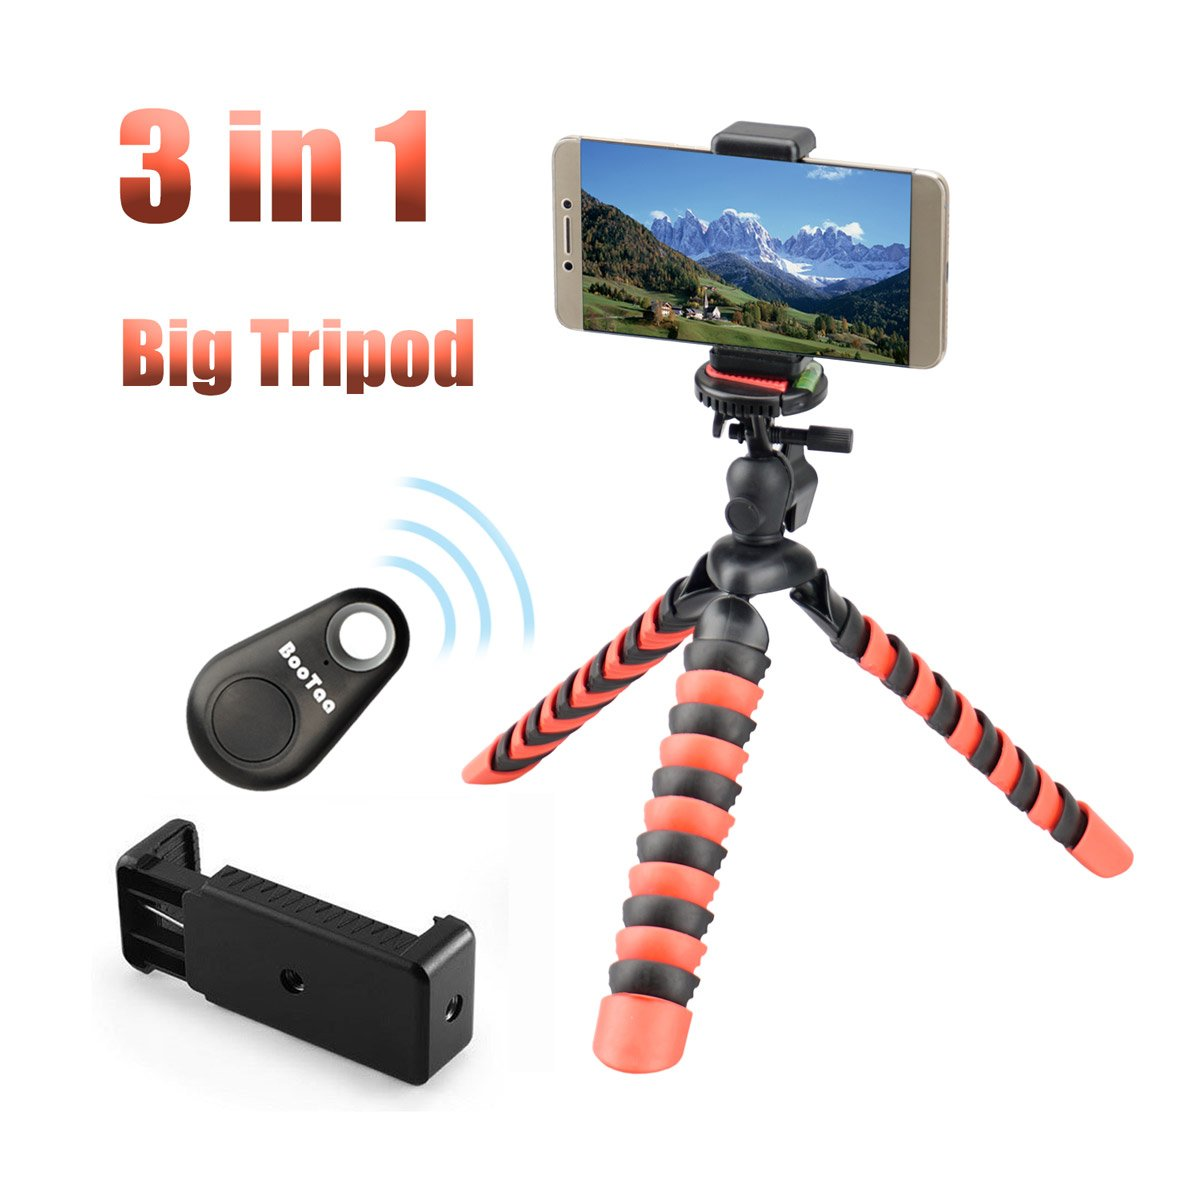 """3 in 1 Flexible Phone Mini Camera Tripod,Adjustable Tripod for Iphone,Smartphone,Android phone,Camera with Phone Adapter Mount by Bootaa(12"""" Big Size)"""